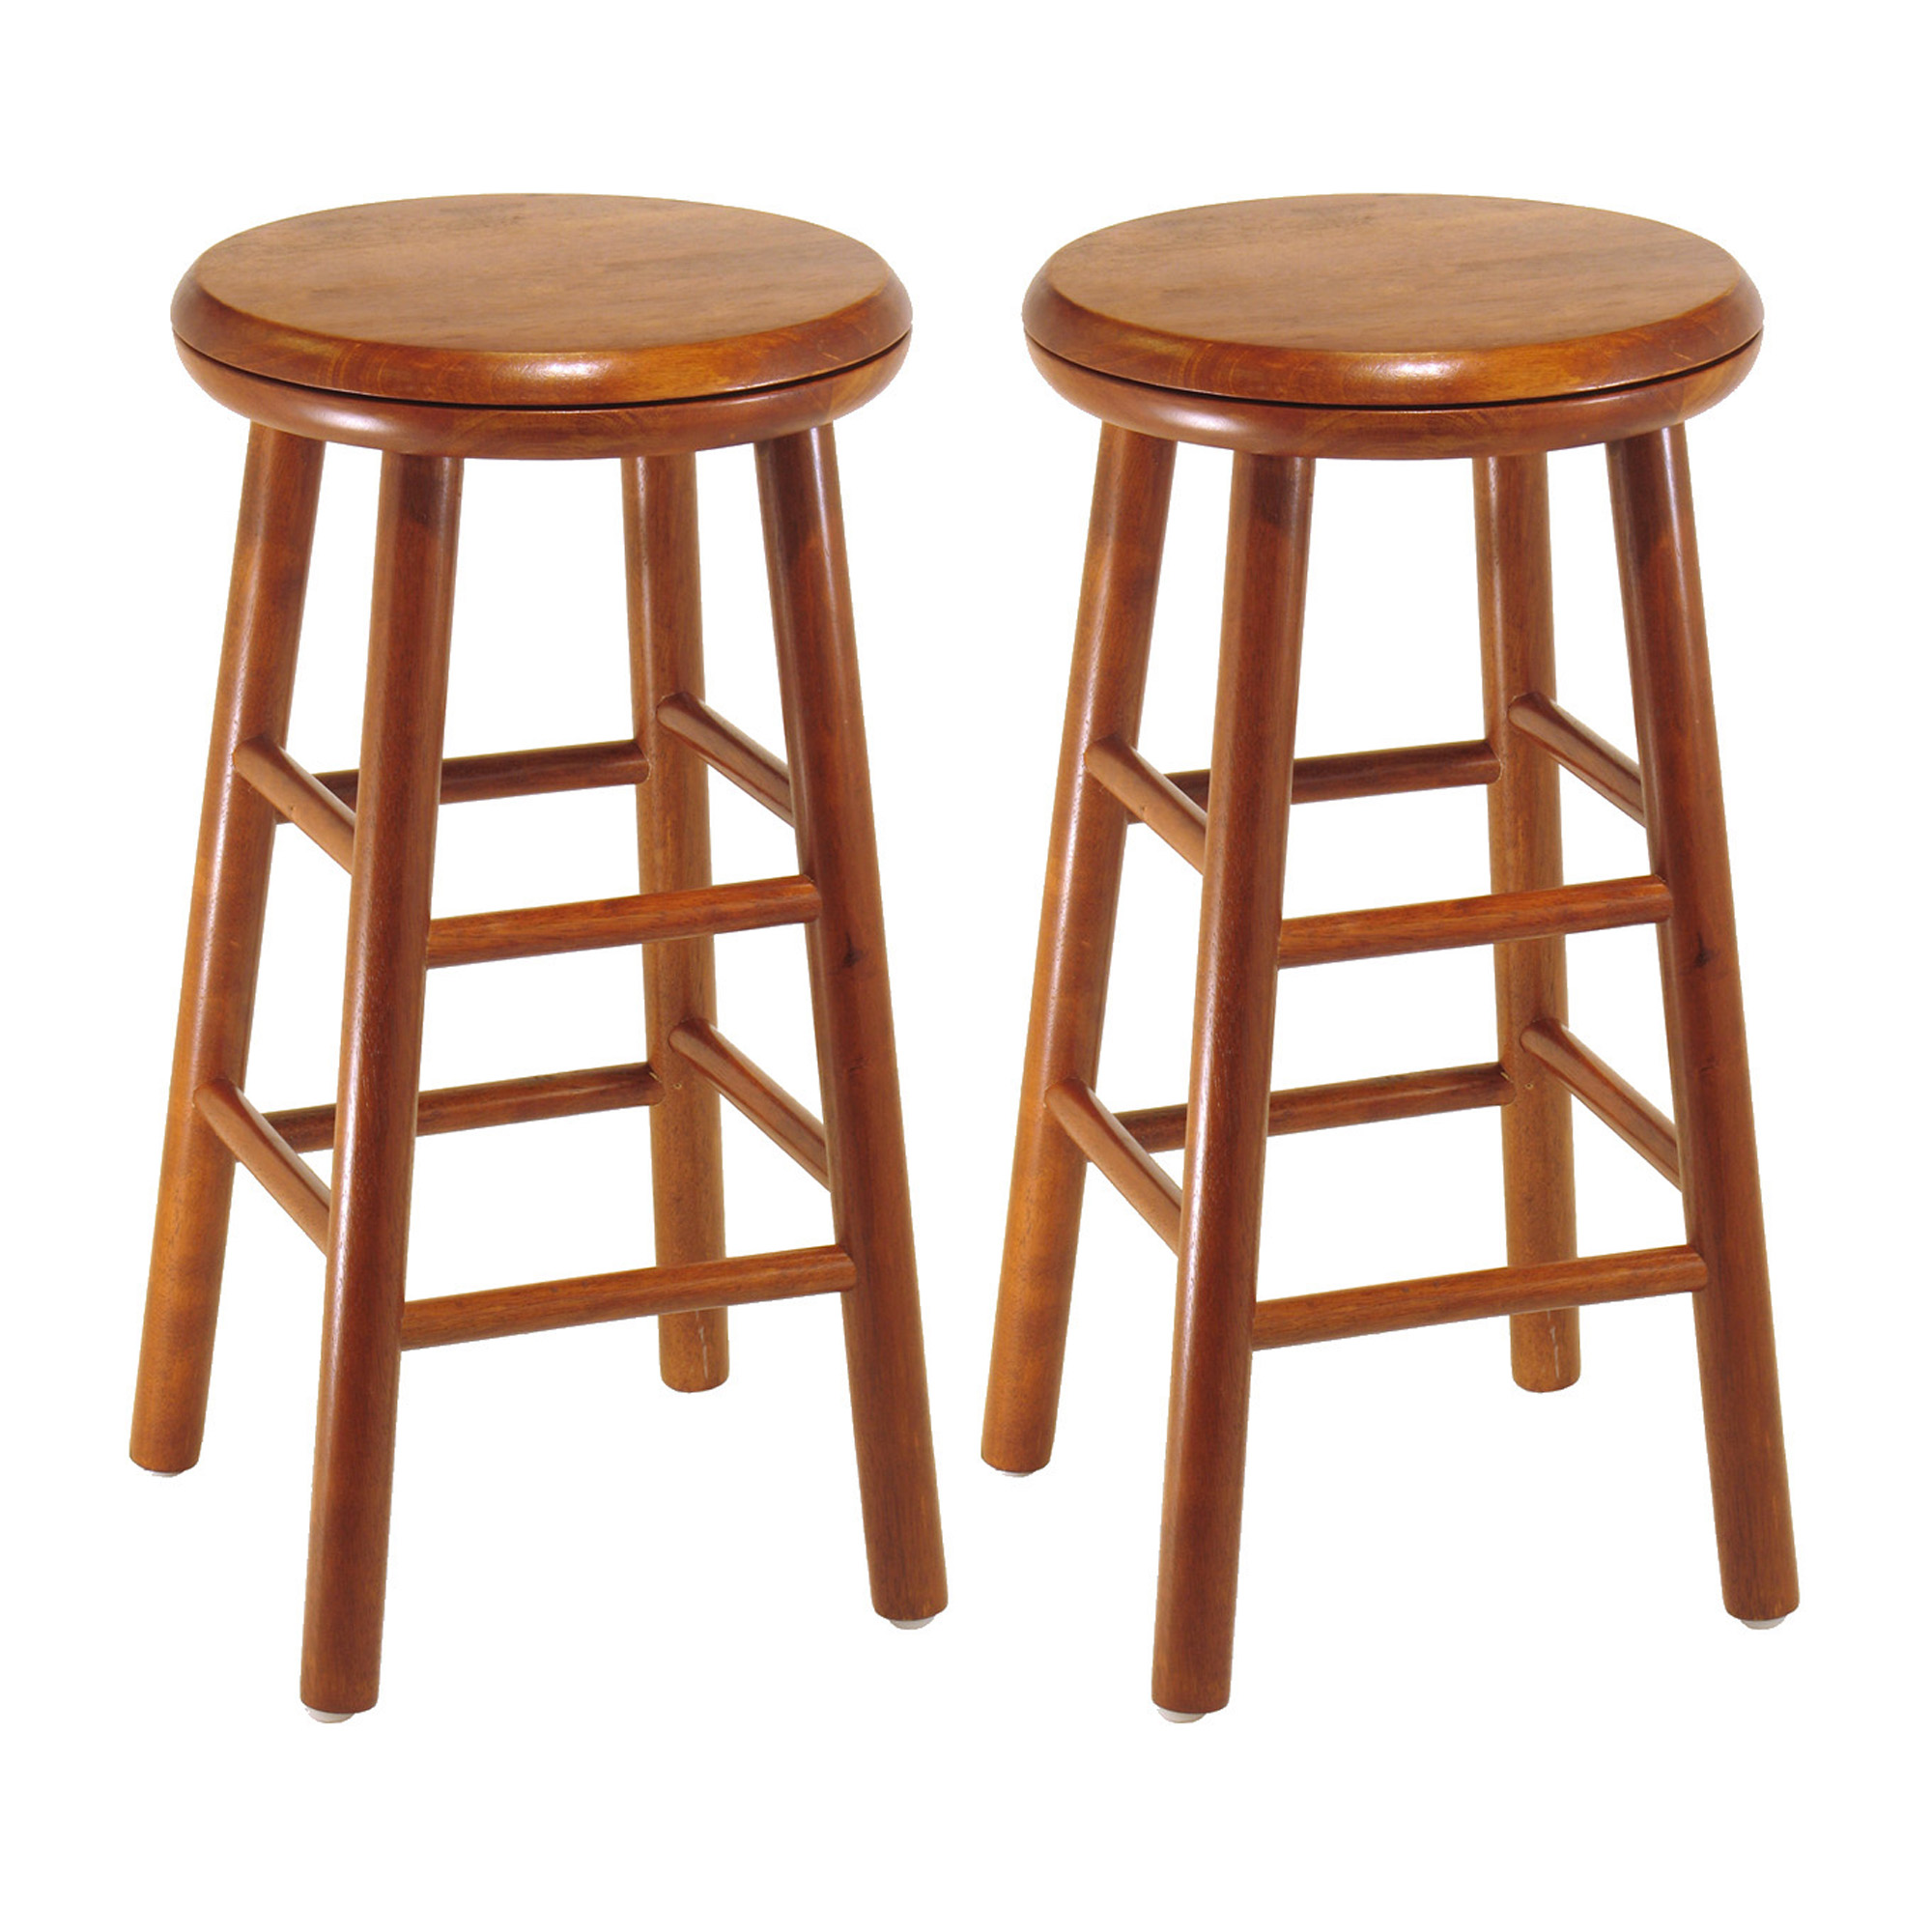 "Winsome Wood Oakley 25"" Swivel Seat Stools, Set of 2, Multiple Finish"